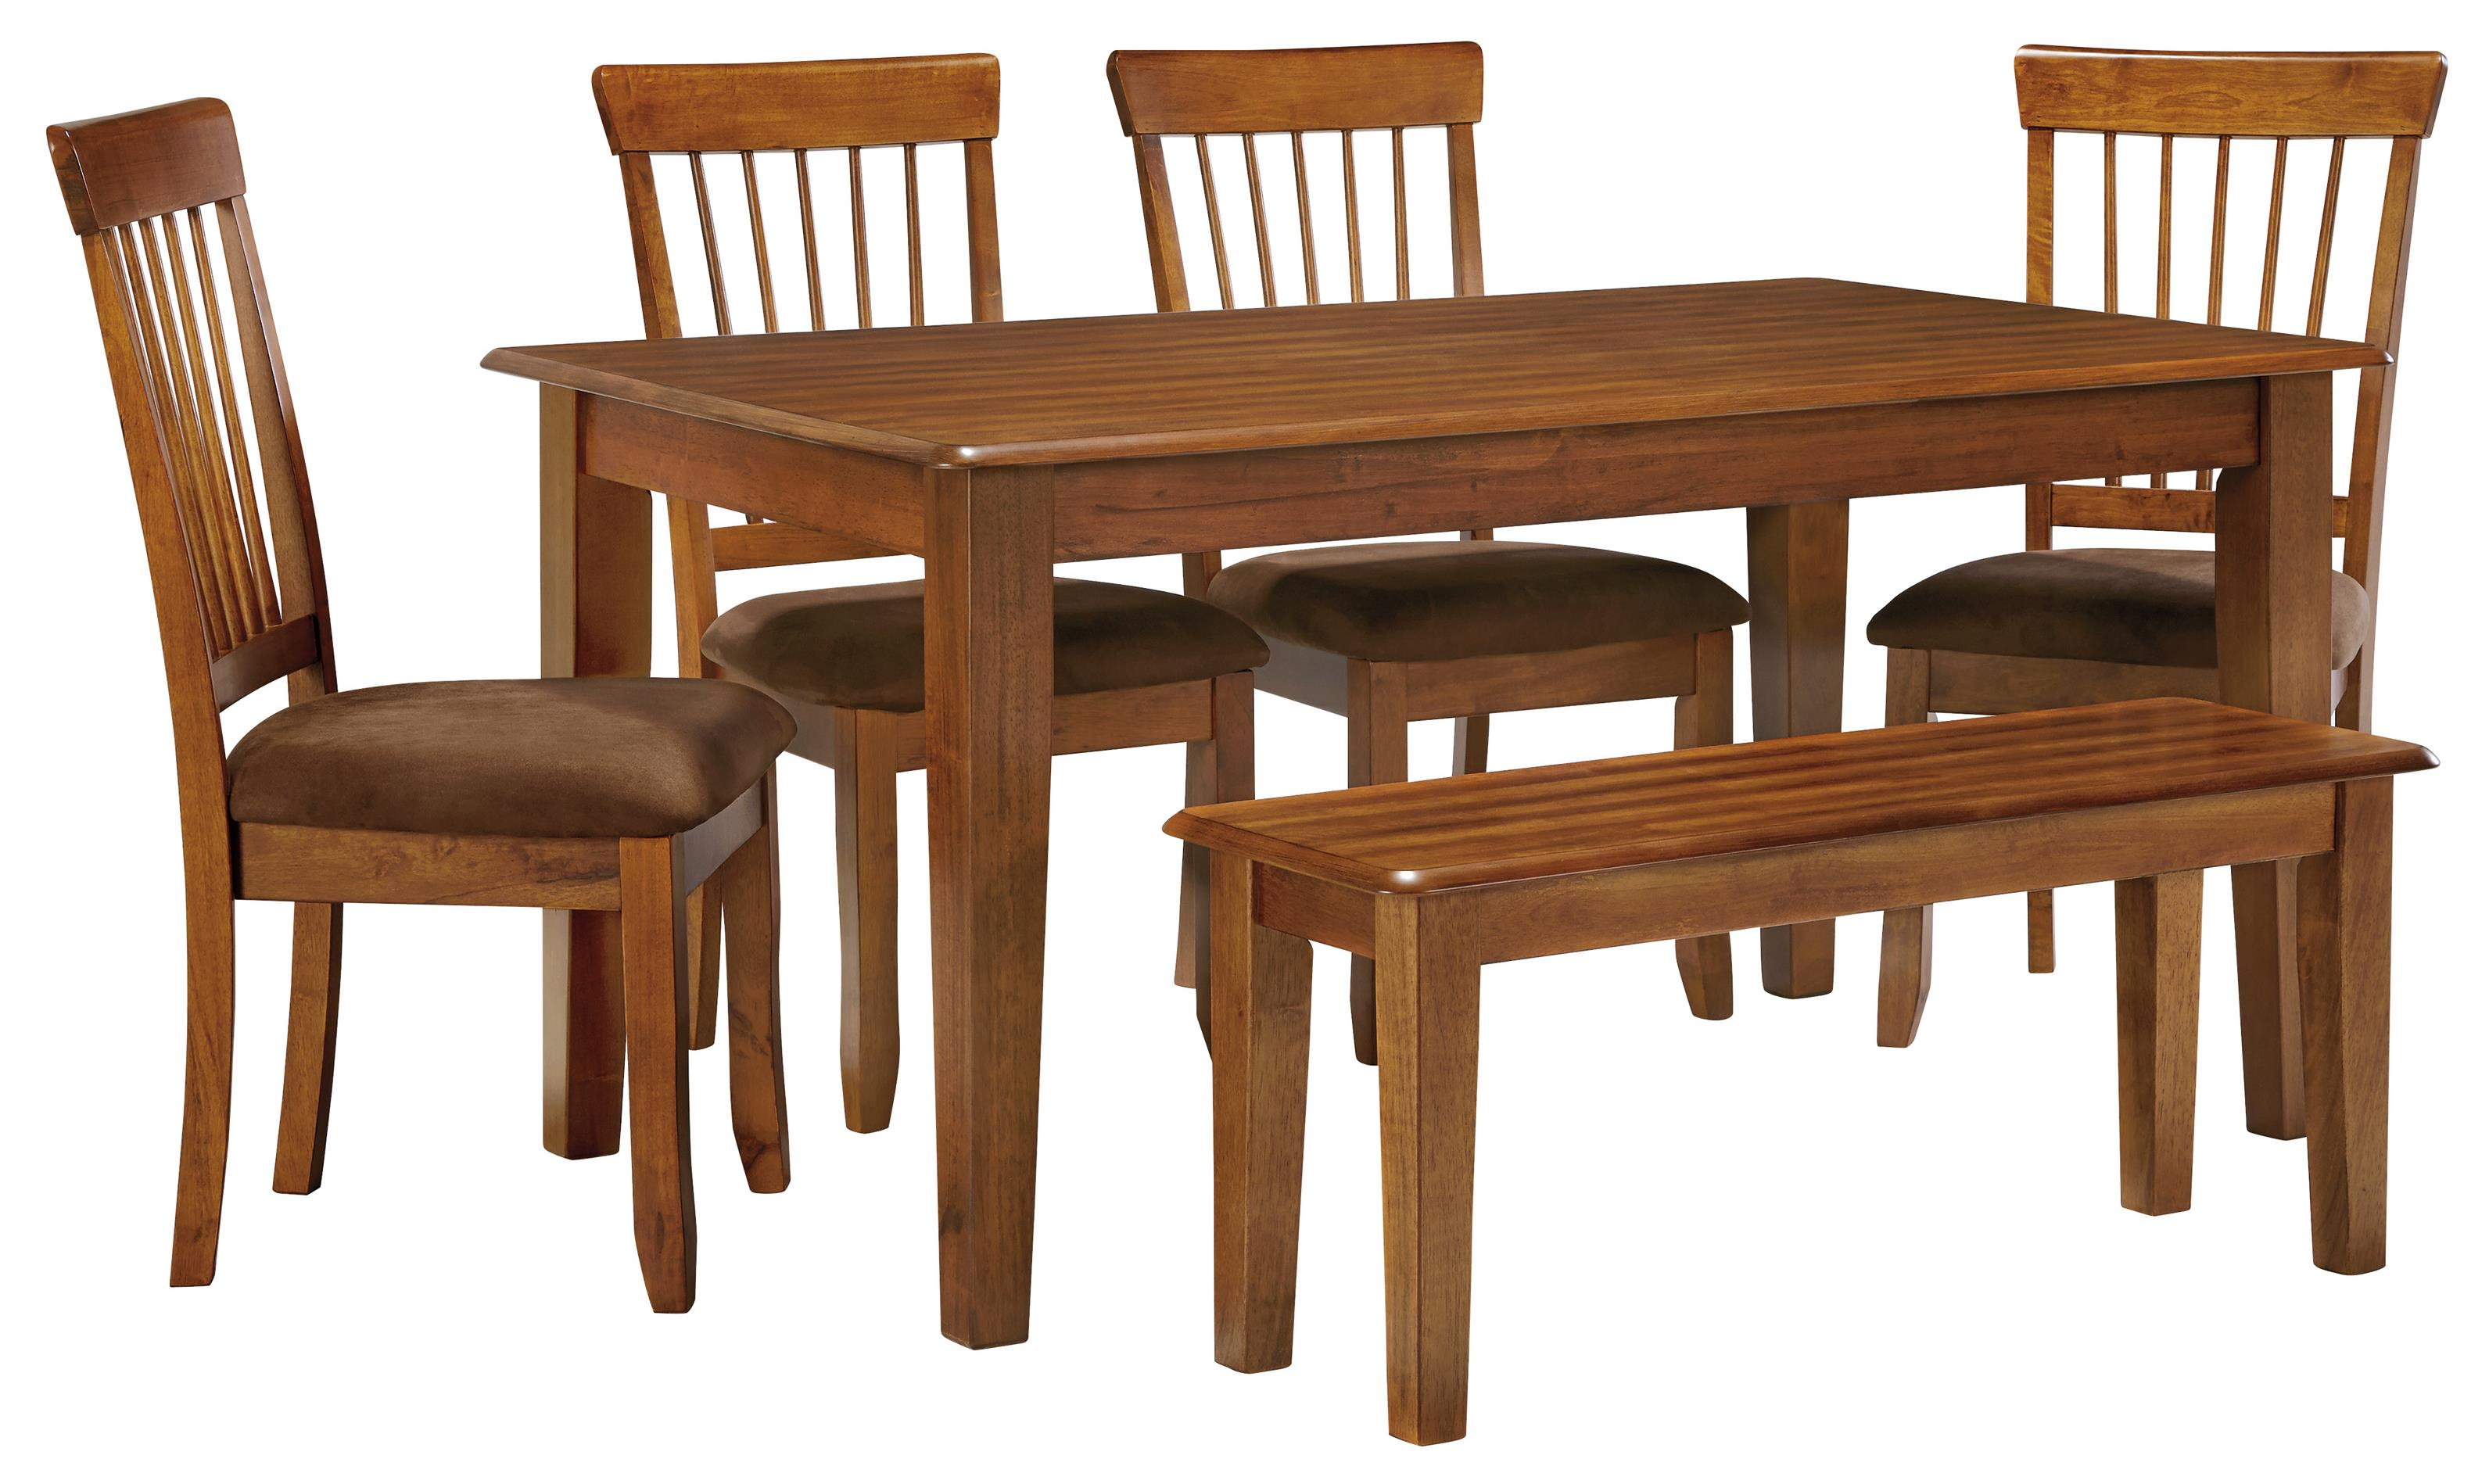 Ashley Furniture Table And Chairs Ashley Furniture Berringer 36 X 60 Table With 4 Chairs